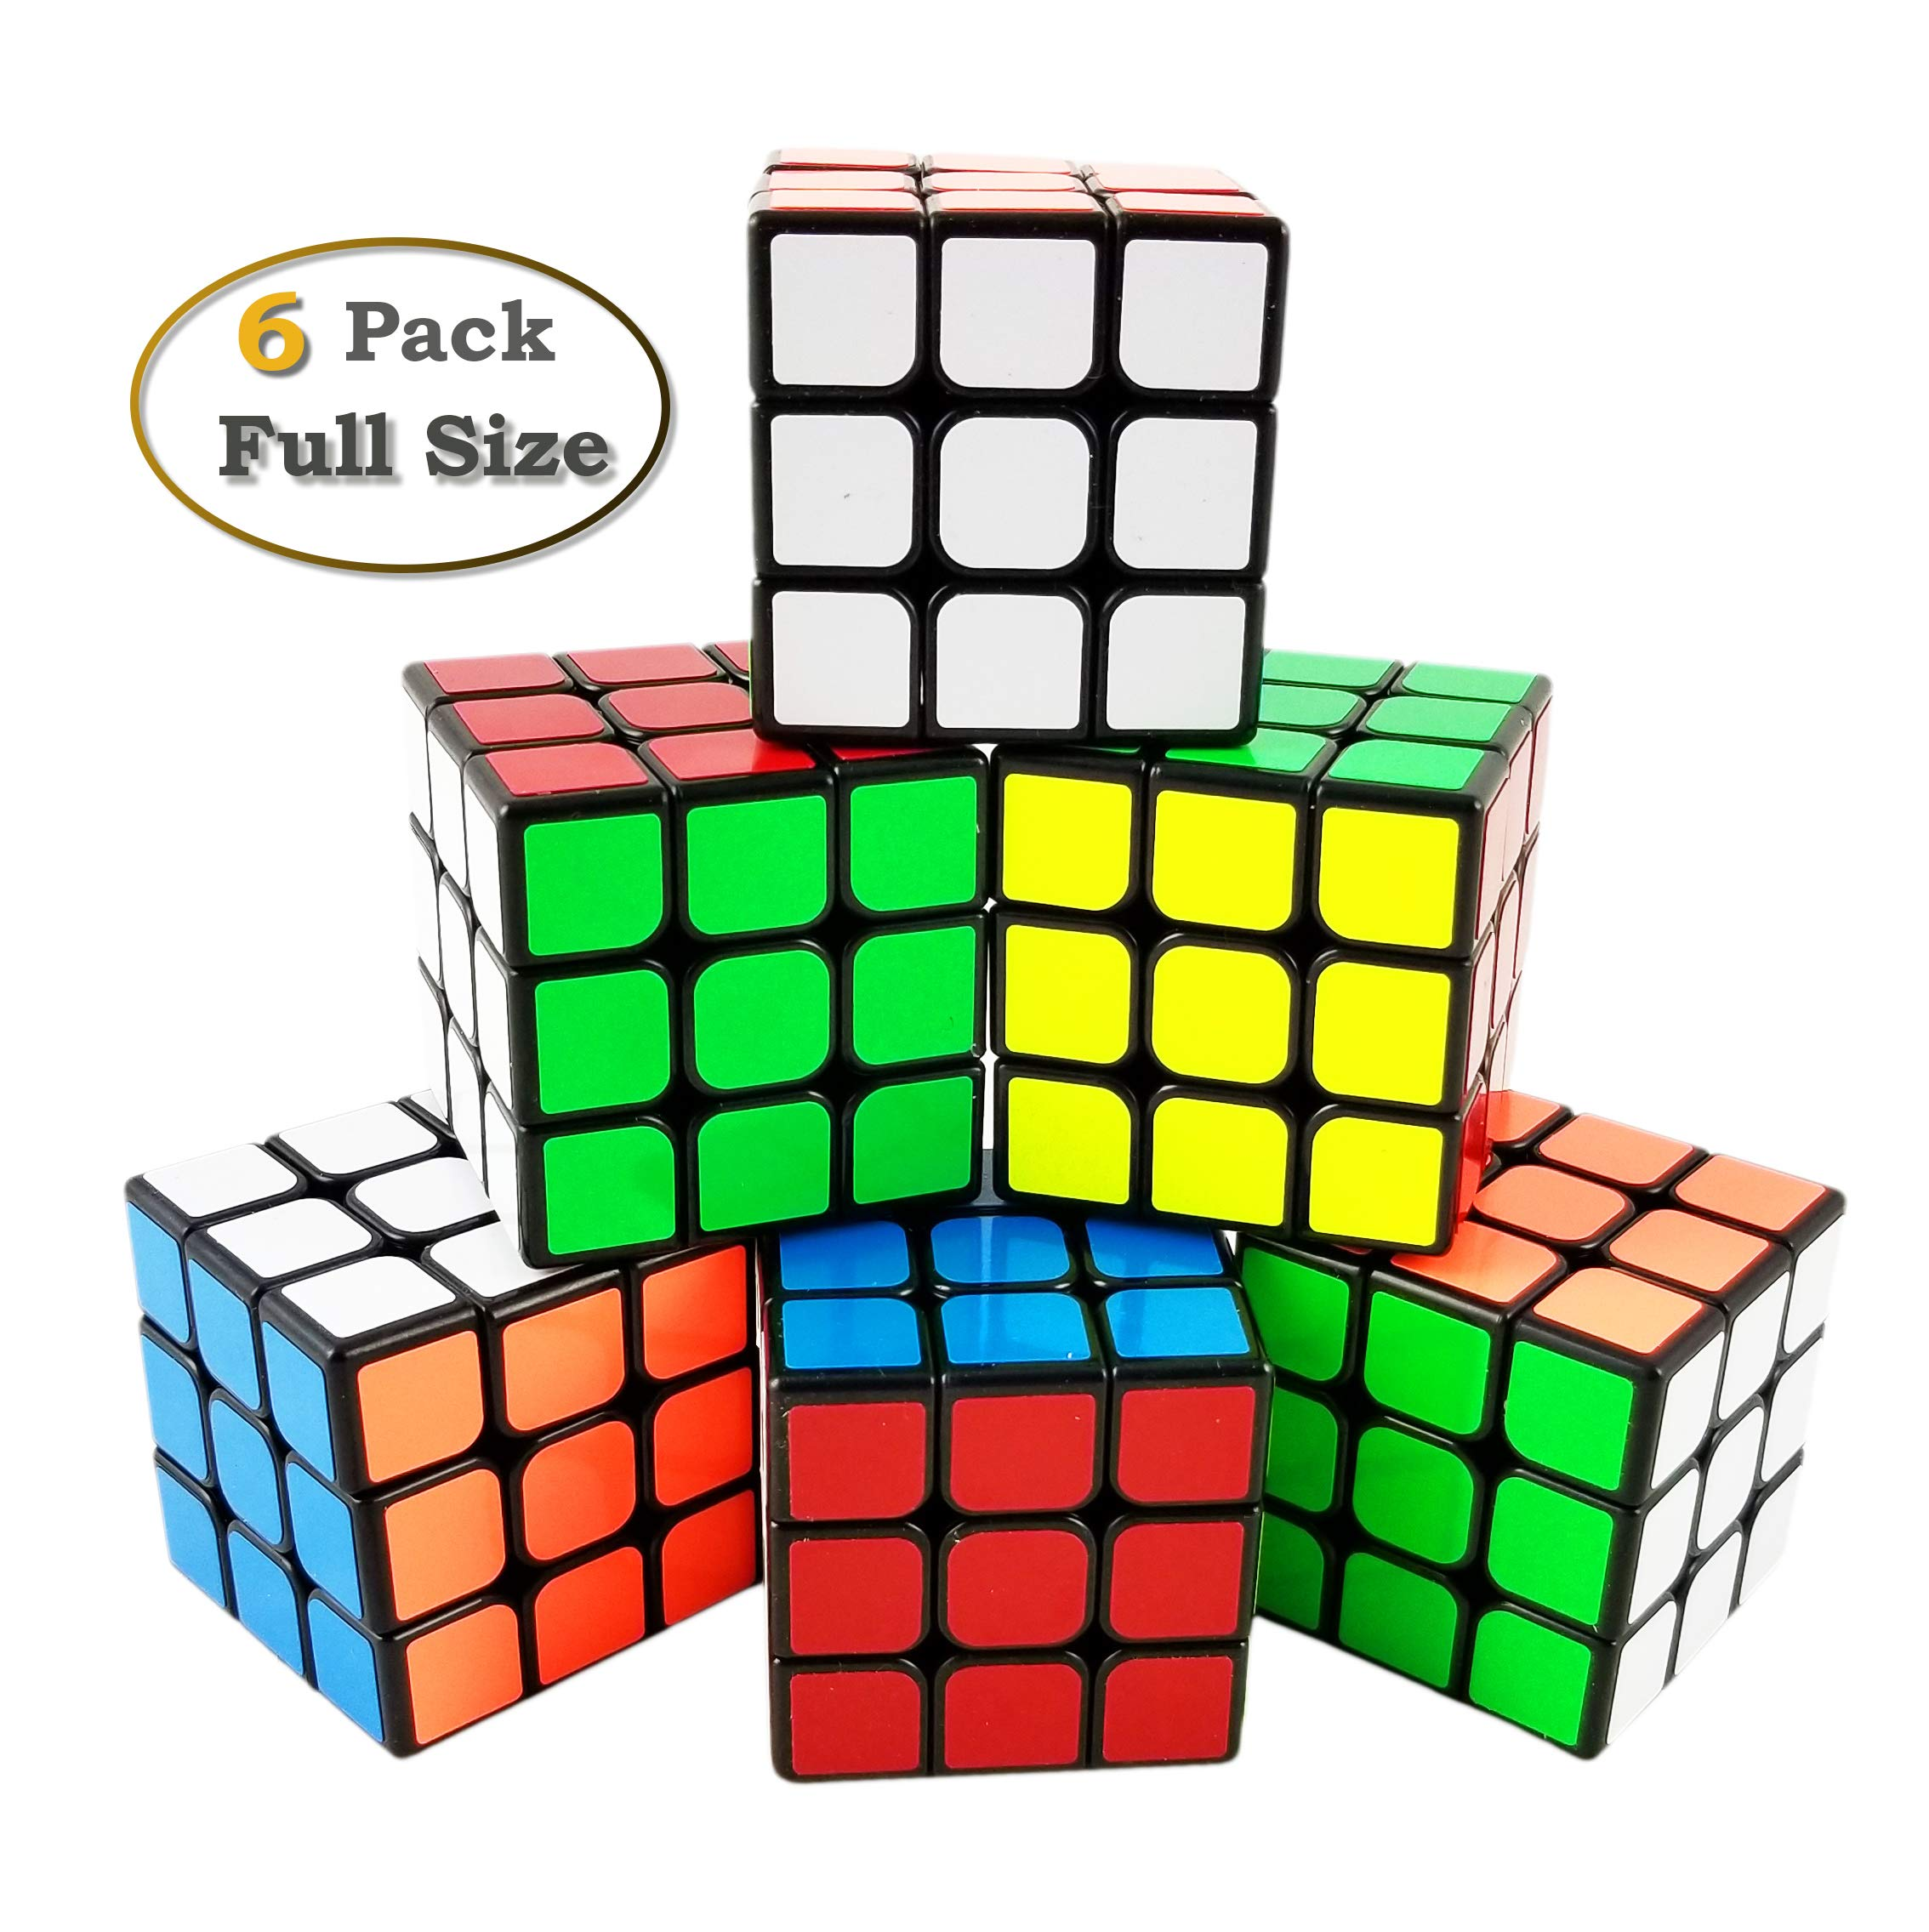 INTEGEAR 6 Pack Full Size Magic Speed Cube 3x3x3 Easy Turning and Smooth Play Puzzle Cube Bulk 56mm Educational Toys for All Age Kids and Adults by INTEGEAR